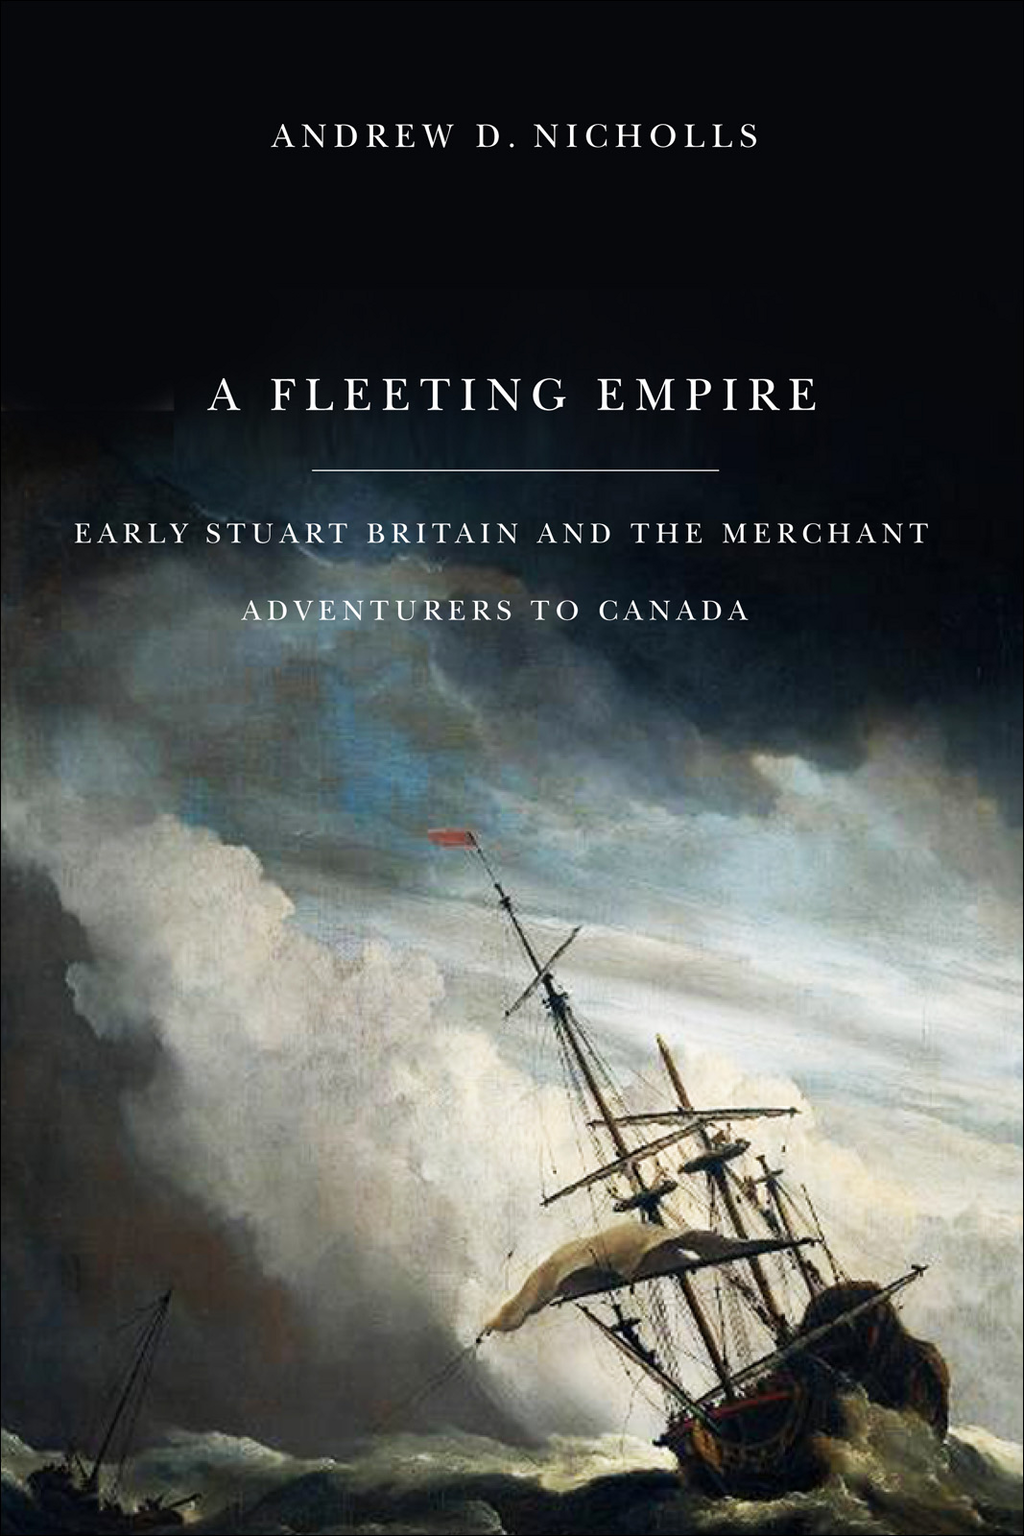 Fleeting Empire: Early Stuart Britain and the Merchant Adventurers to Canada